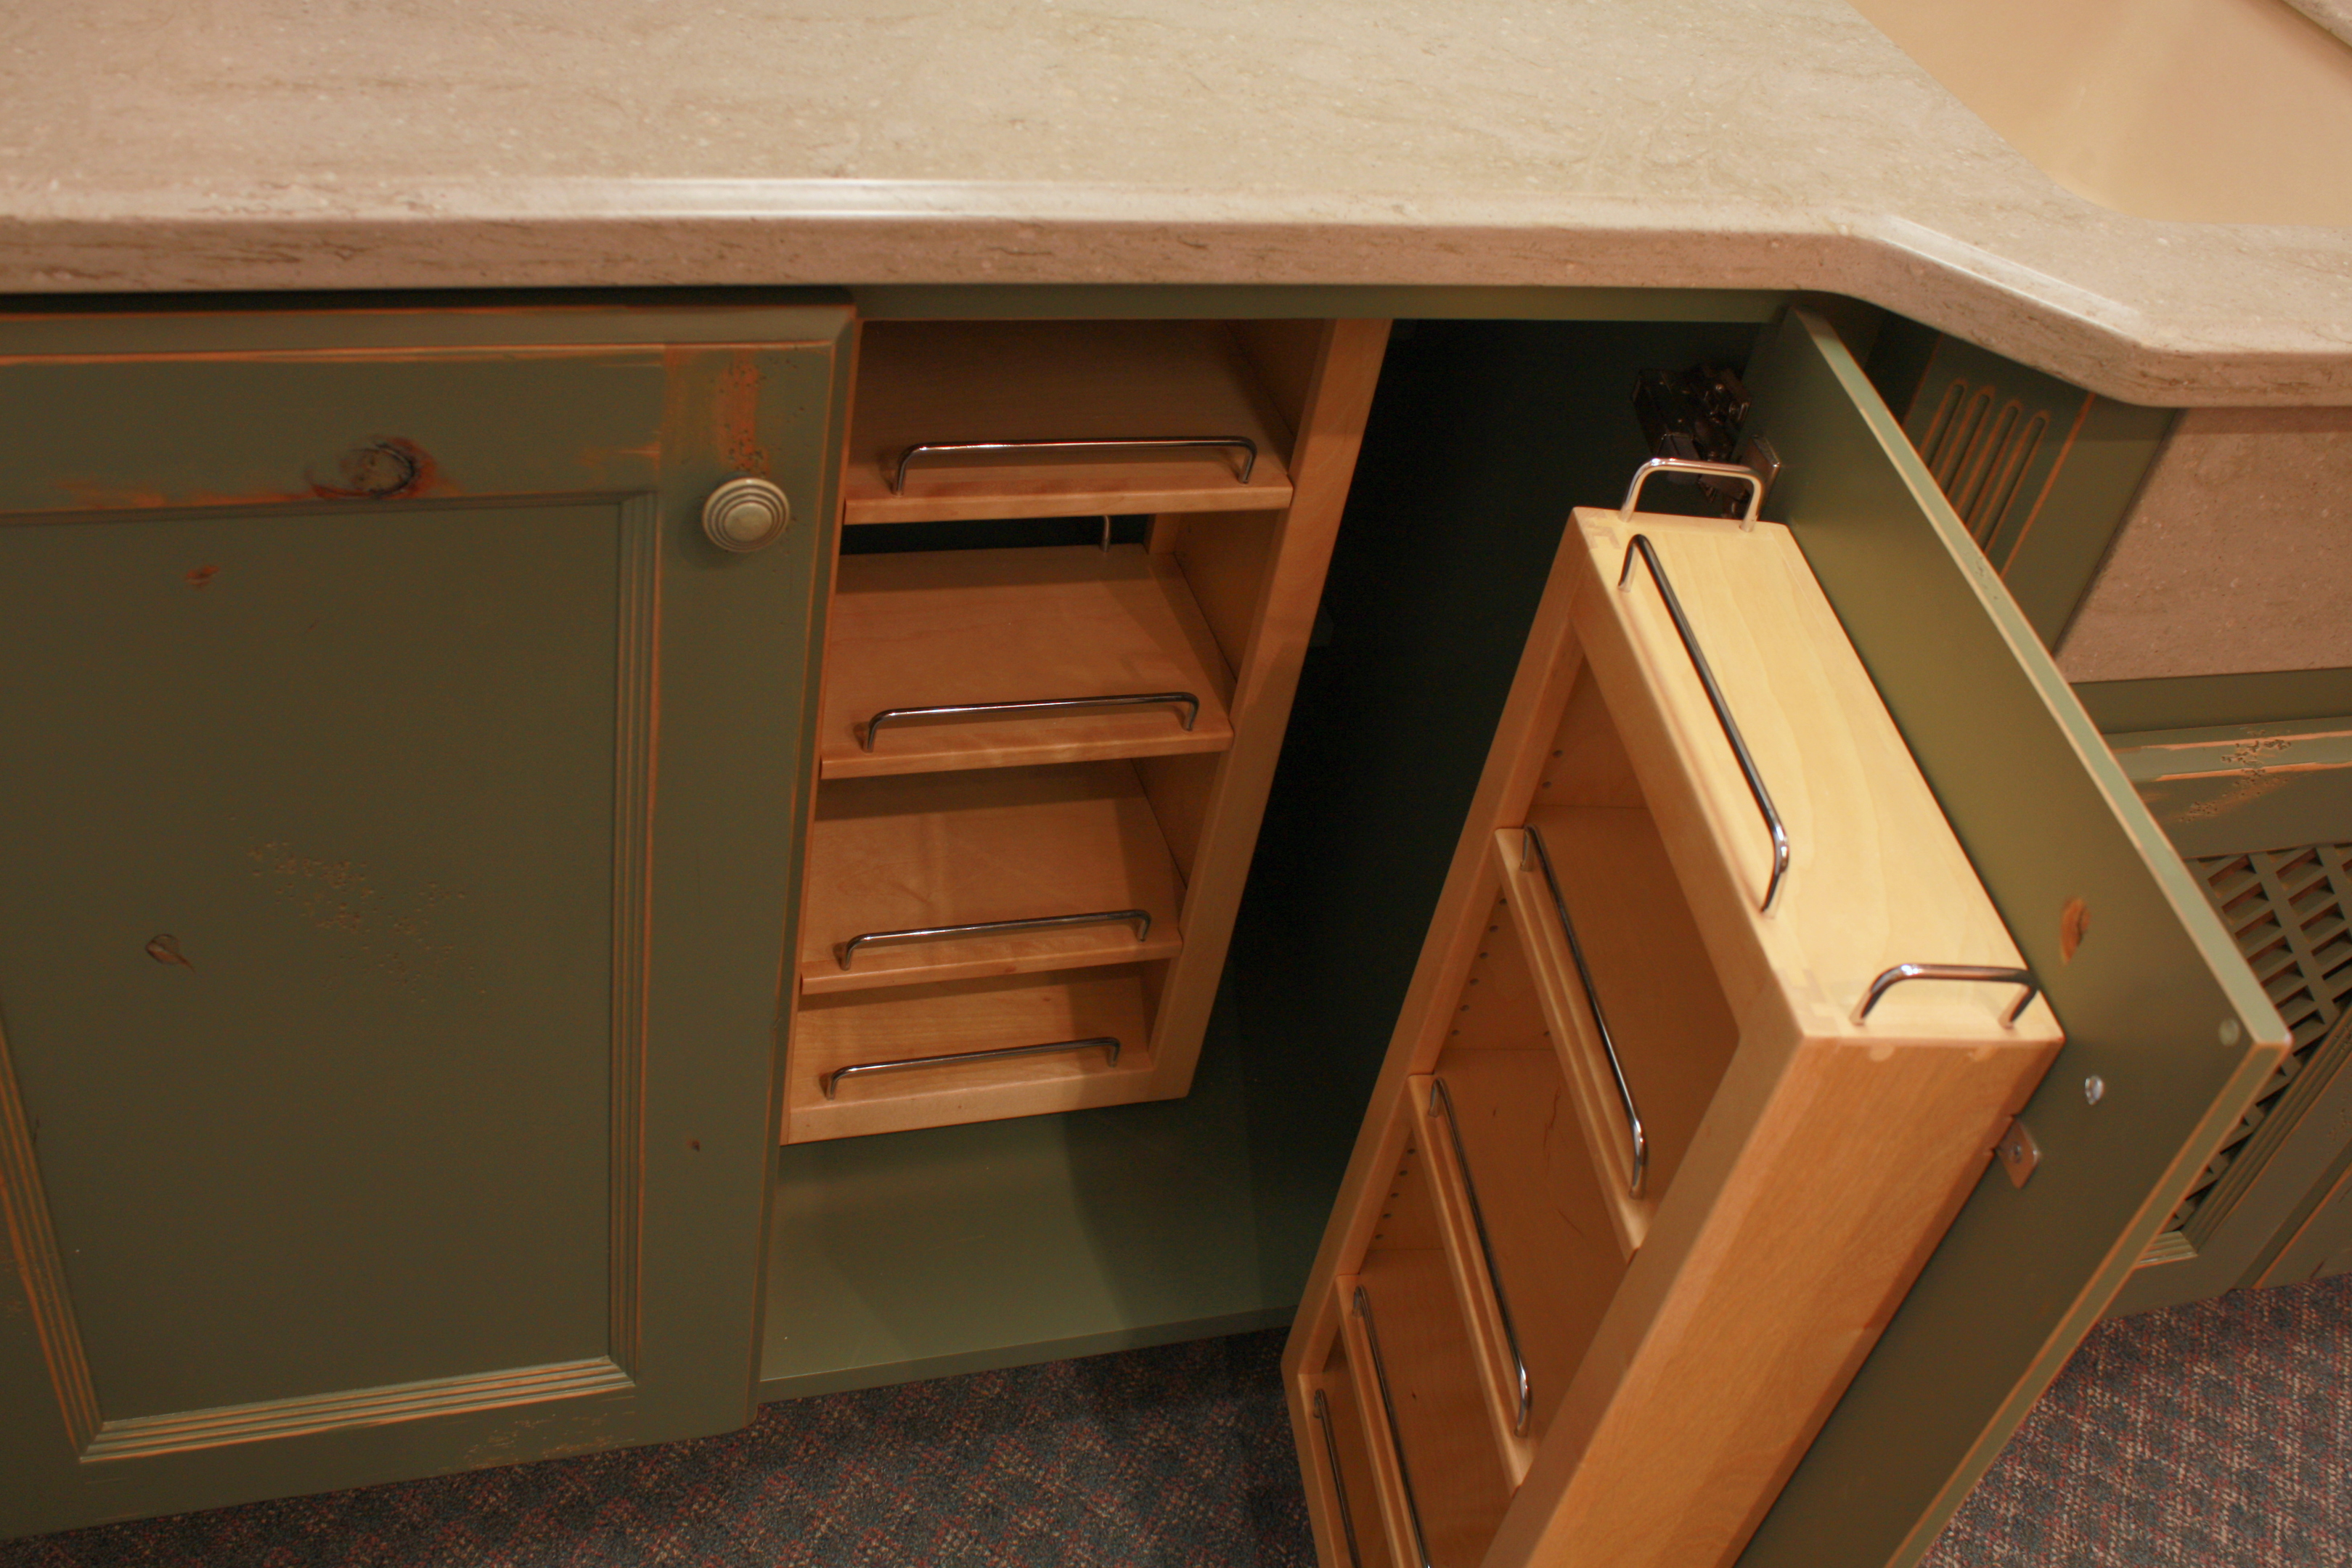 Kitchen  traditional style  knotty alder  green paint with sand through and distress  recessed panel doors  chefs pantry shelves  baking center